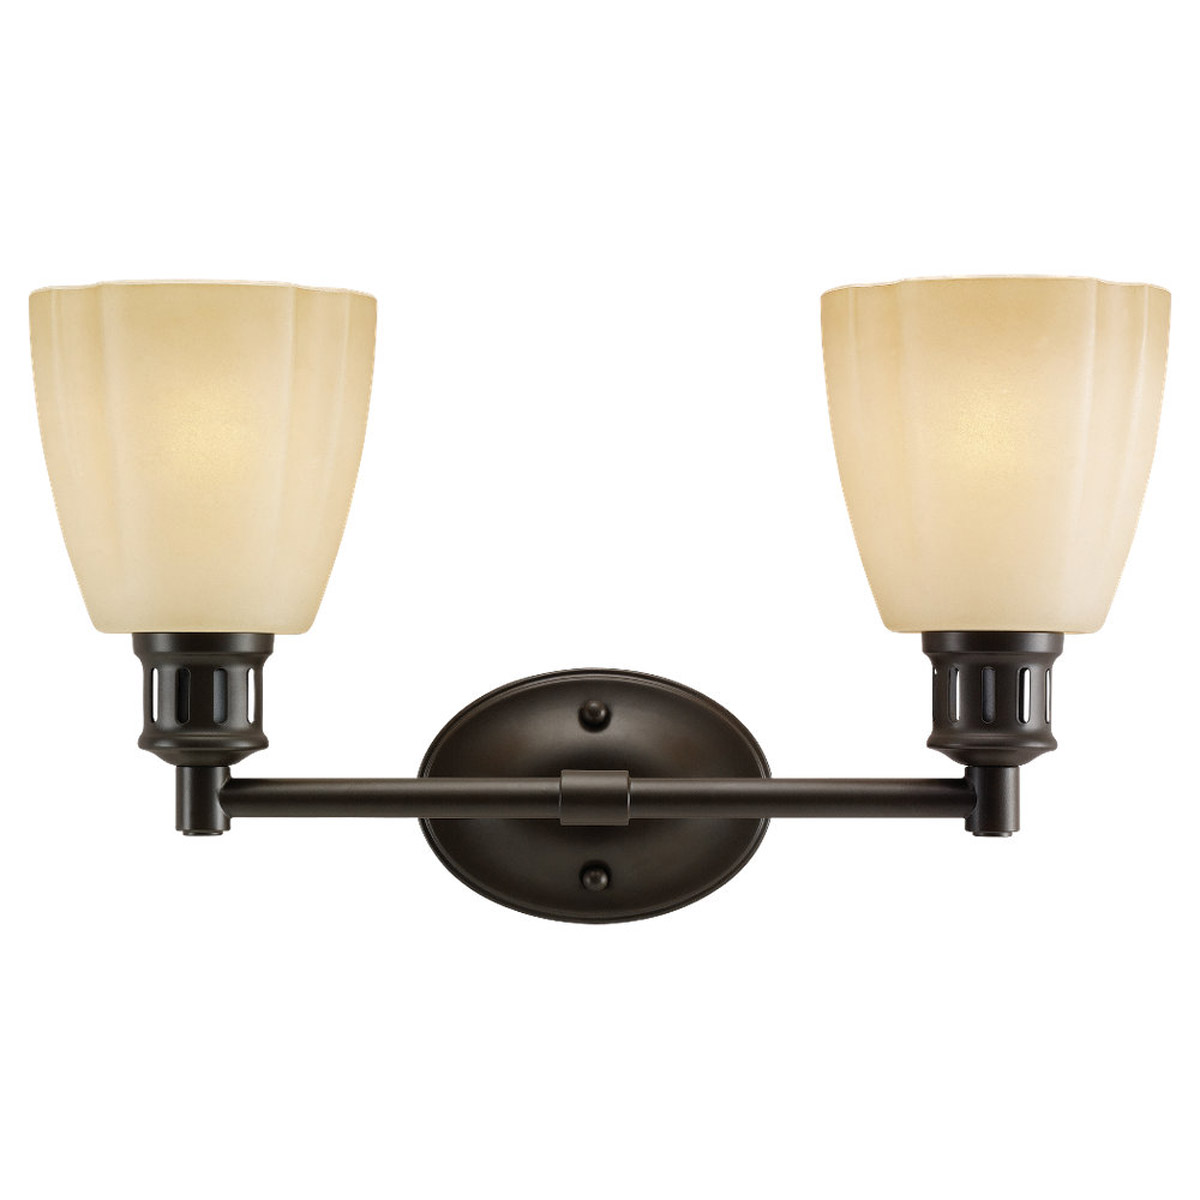 Sea Gull Lighting Century 2 Light Bath Vanity in Heirloom Bronze 44474-782 photo